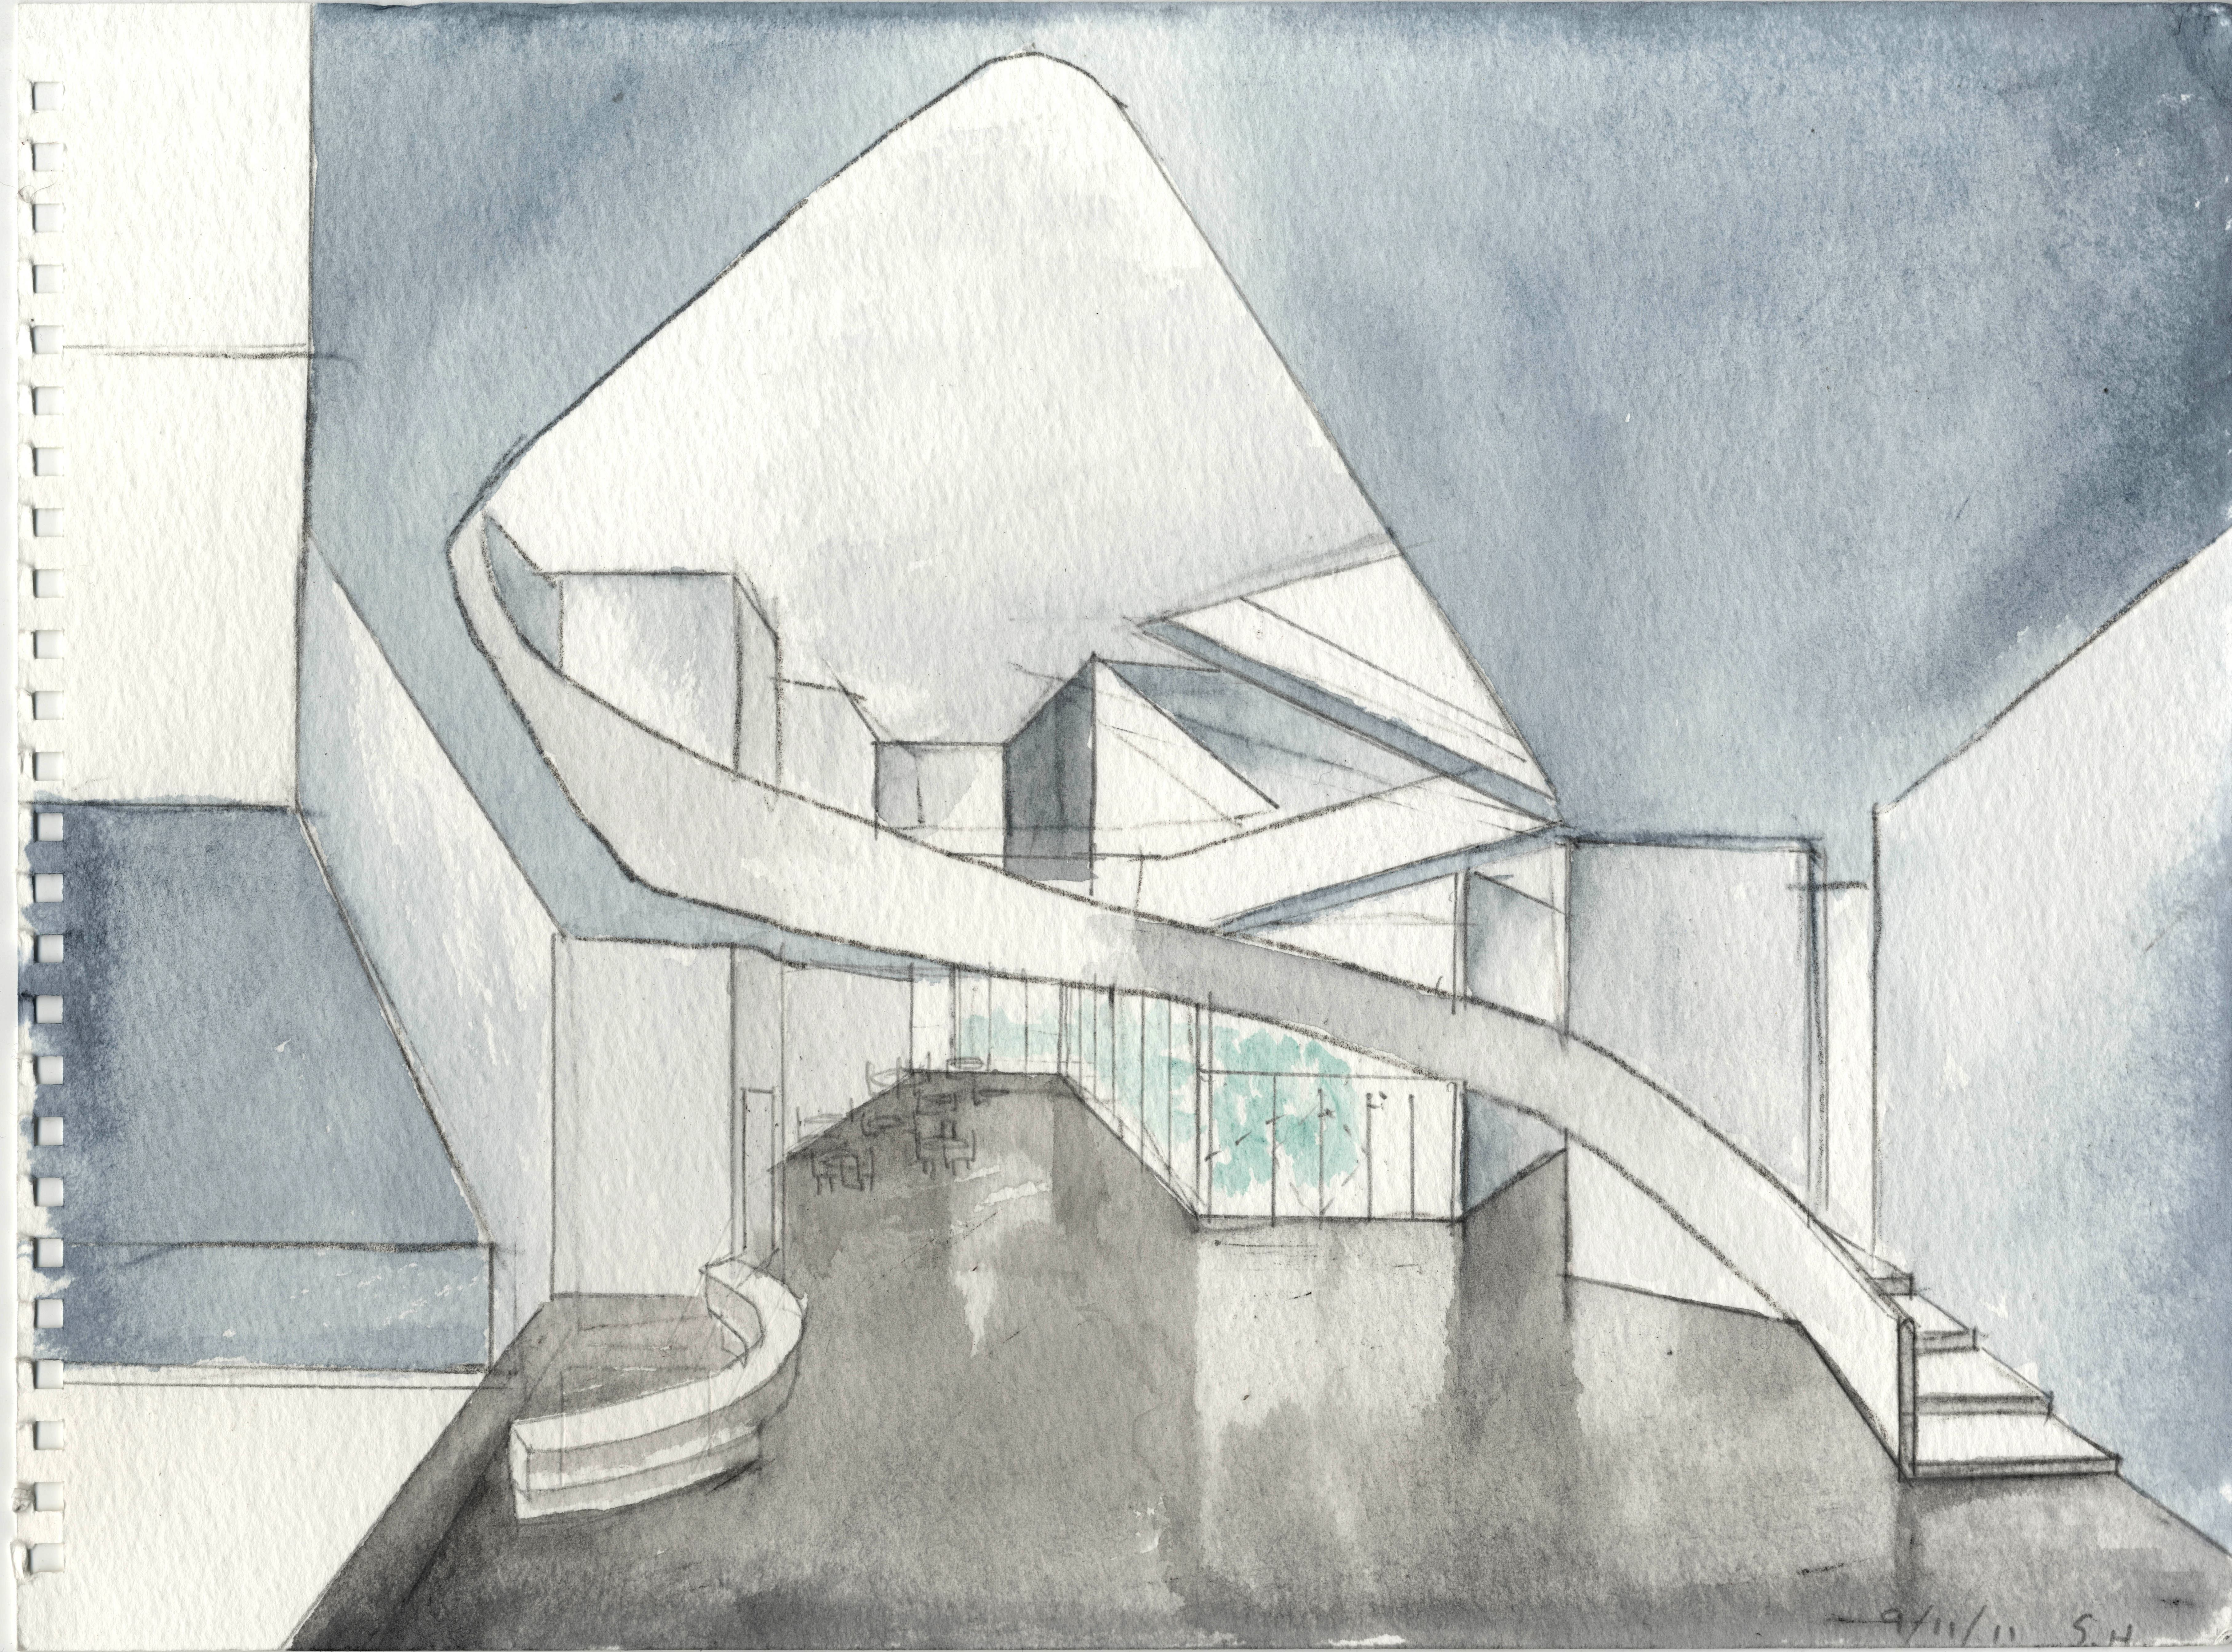 Steven holl architects opens forking time exhibit architect magazine for Art institute interior design reviews